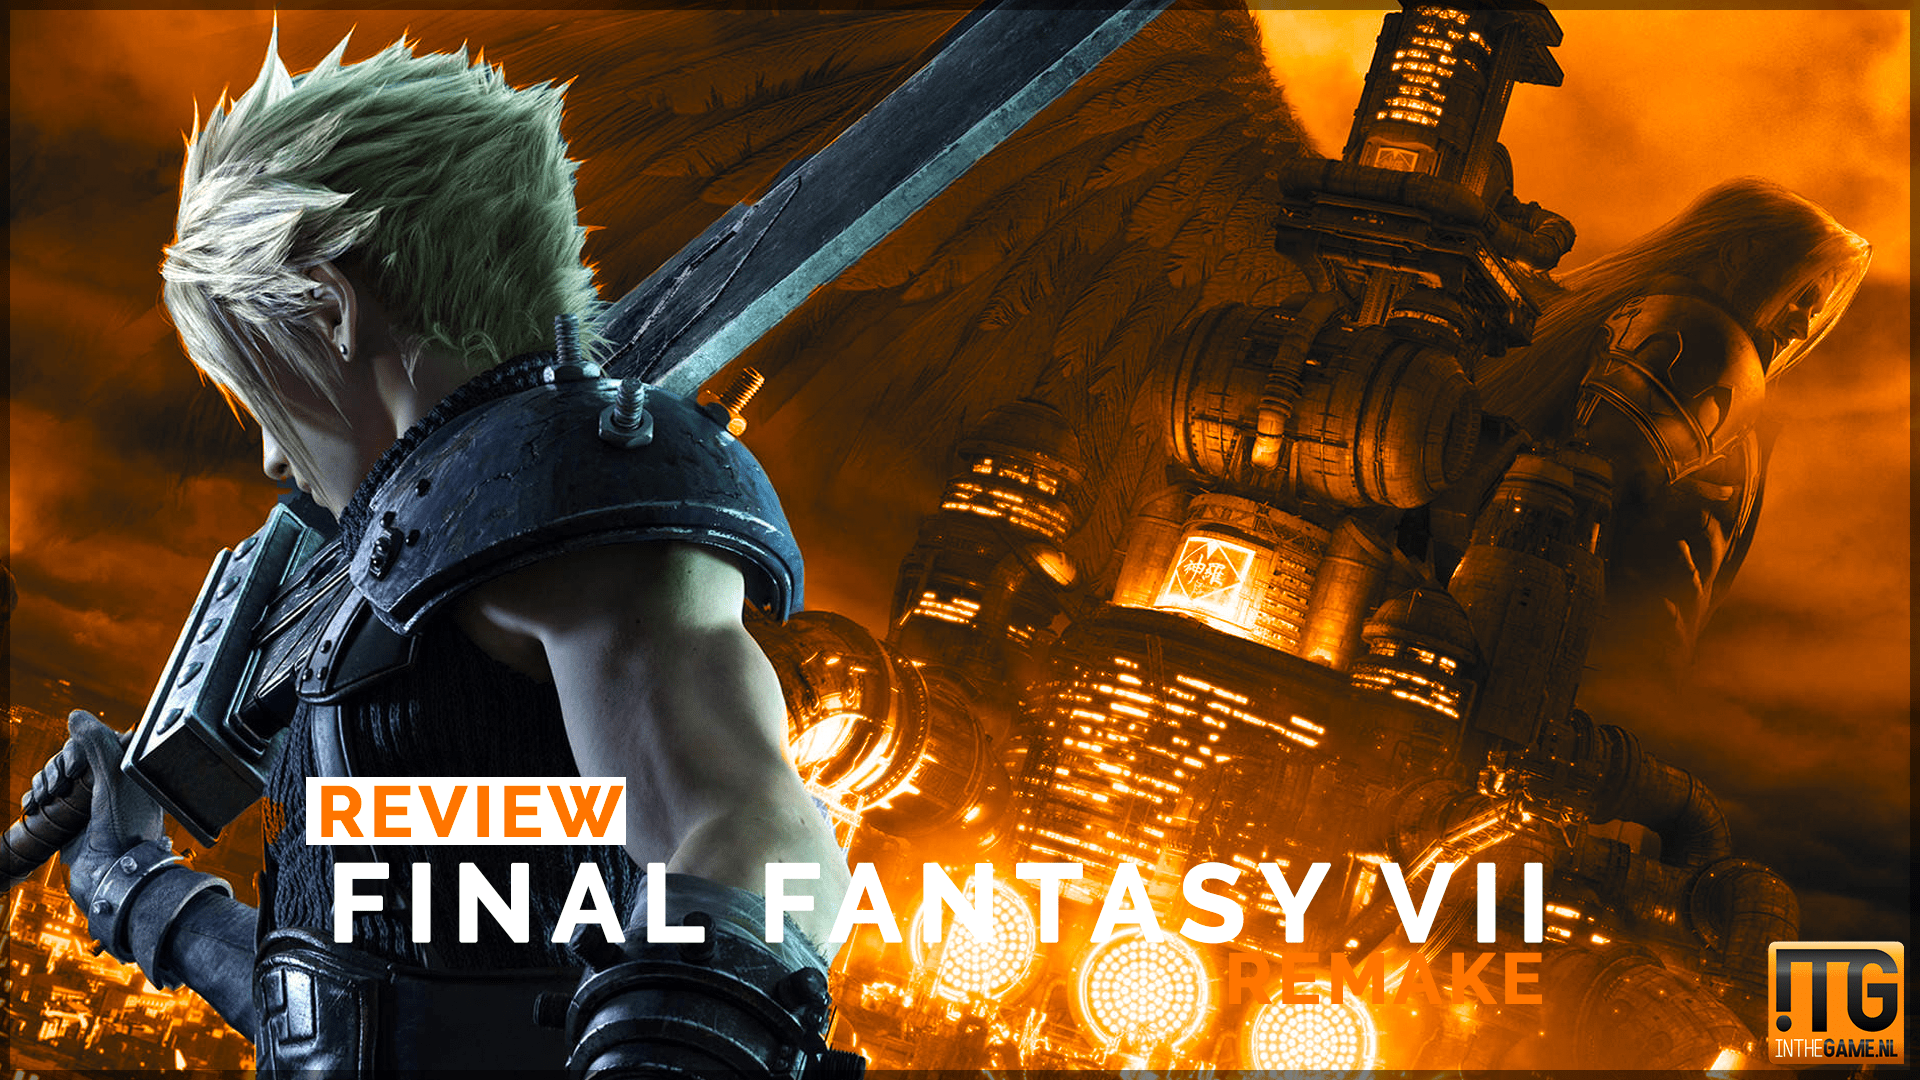 Review: Final Fantasy VII Remake, Cloud is back!